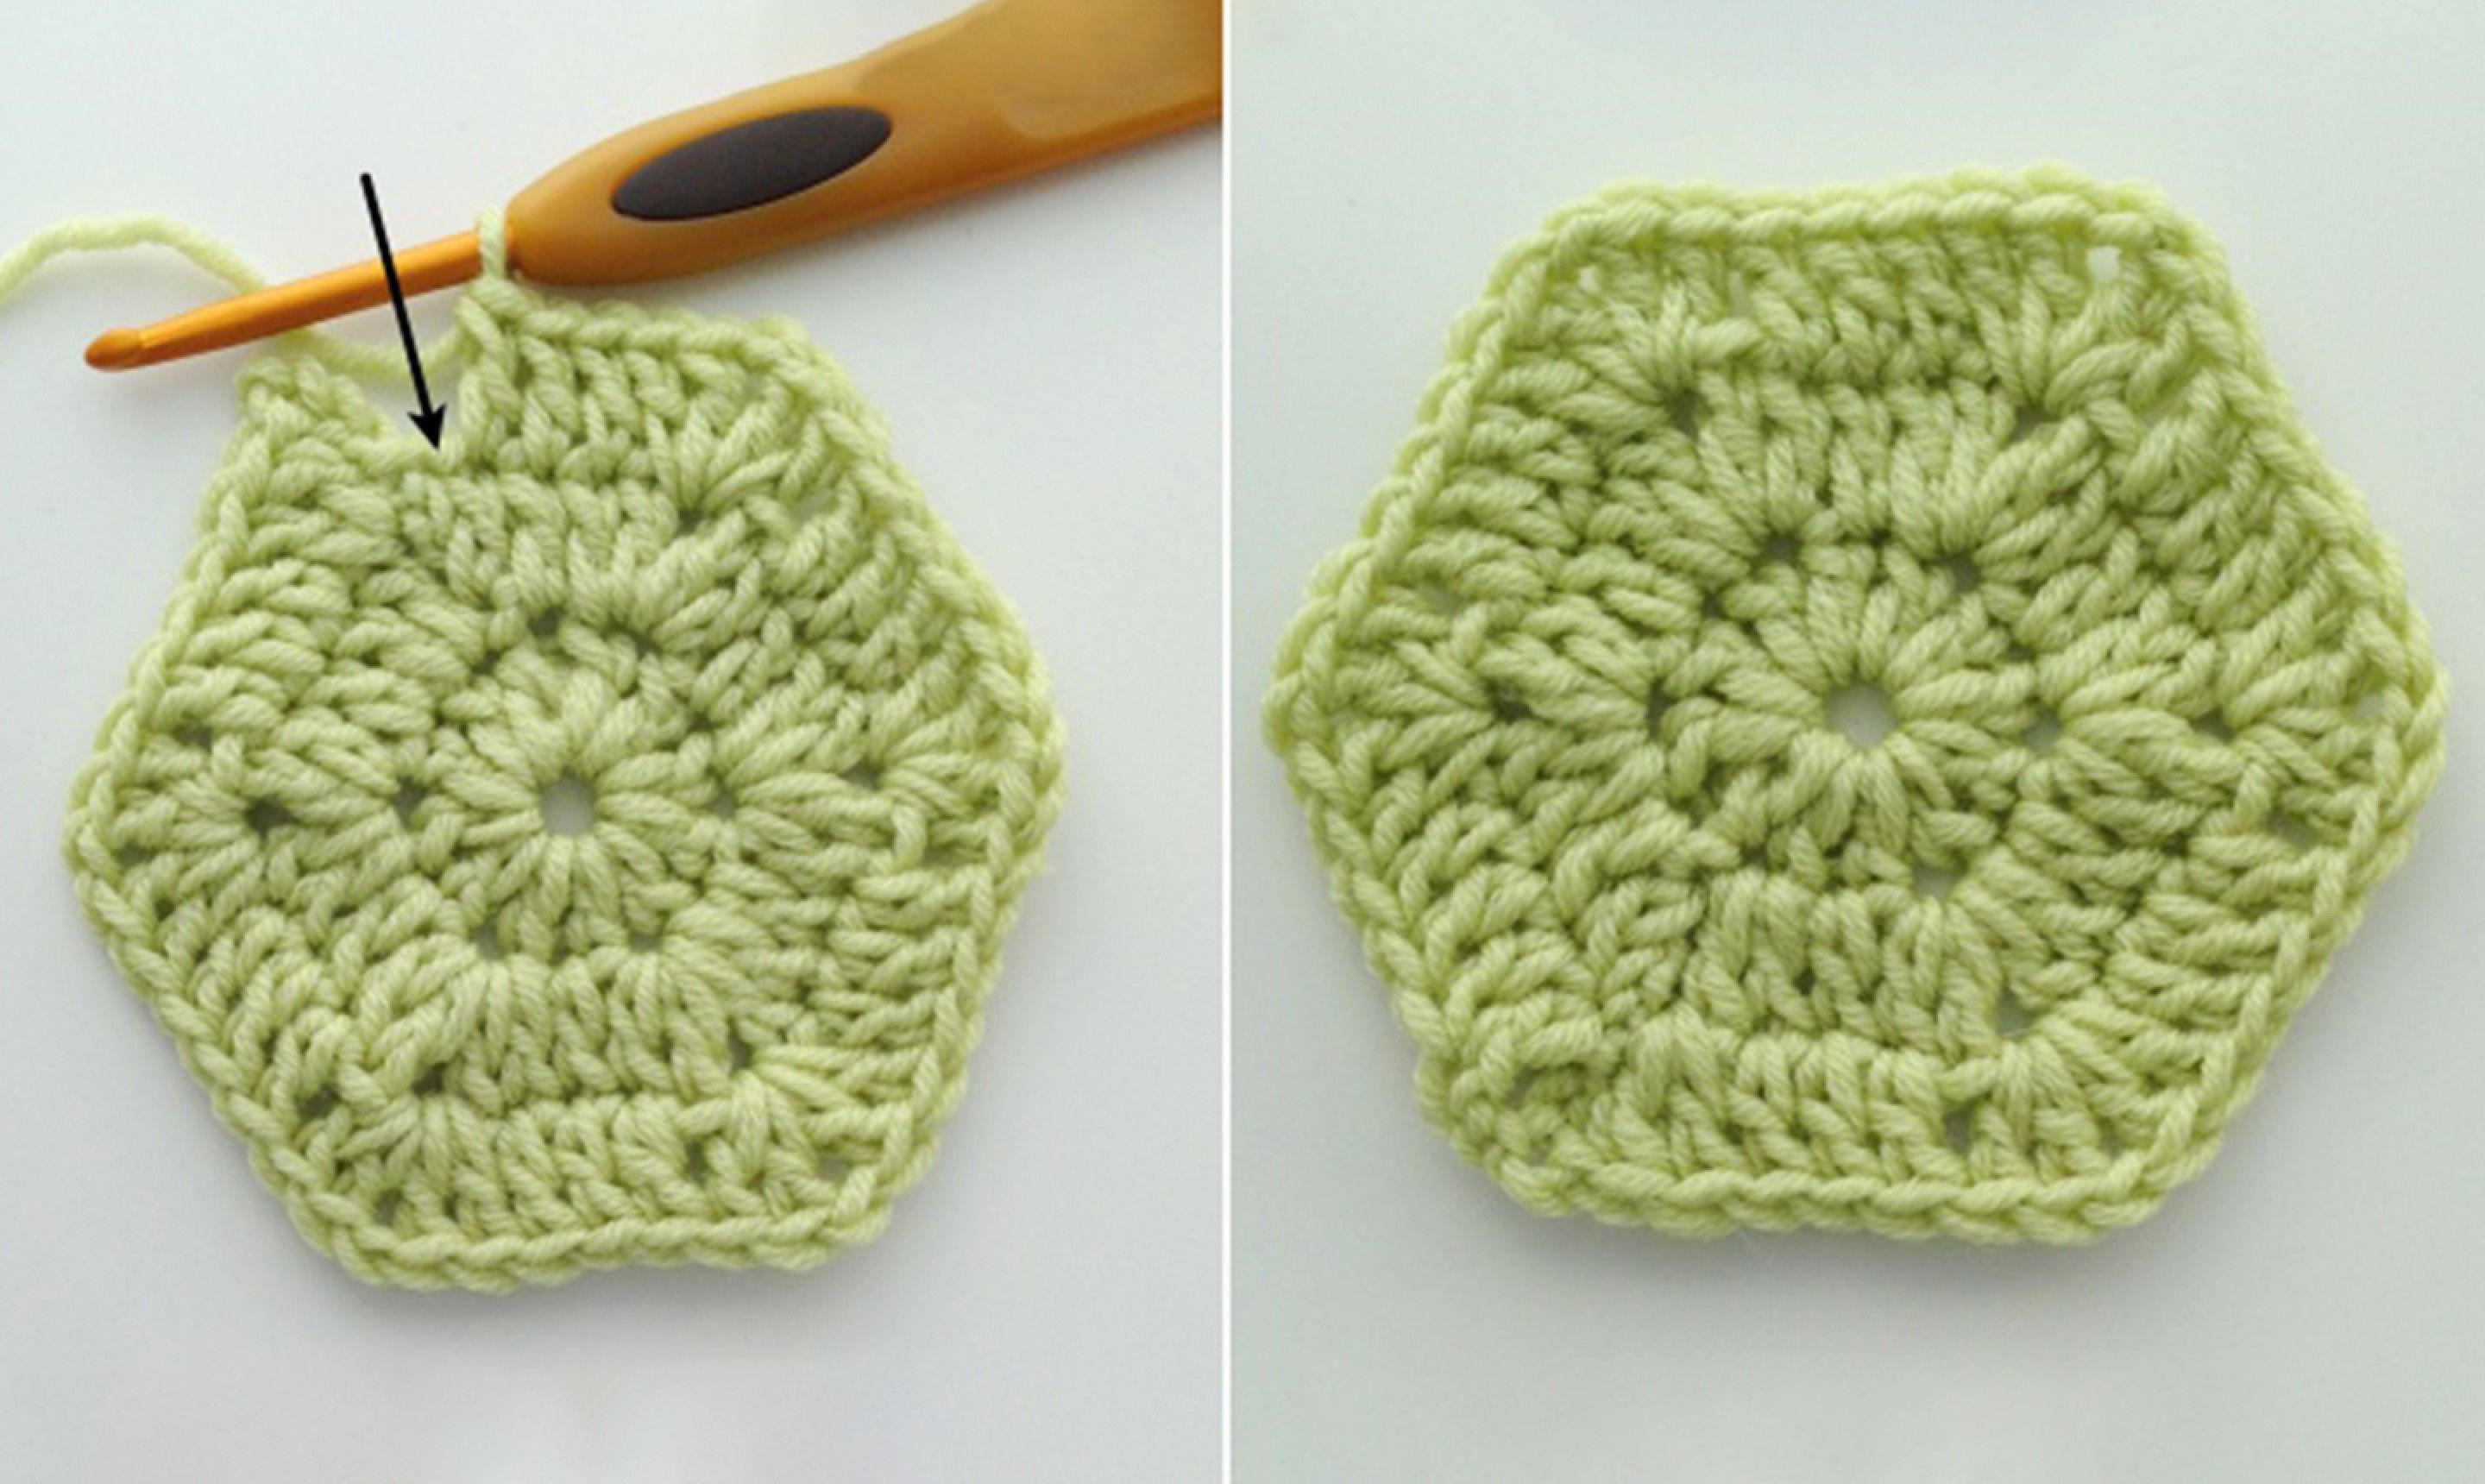 Make Solid Crochet Hexagons Your Graphic Go-To   Craftsy ...